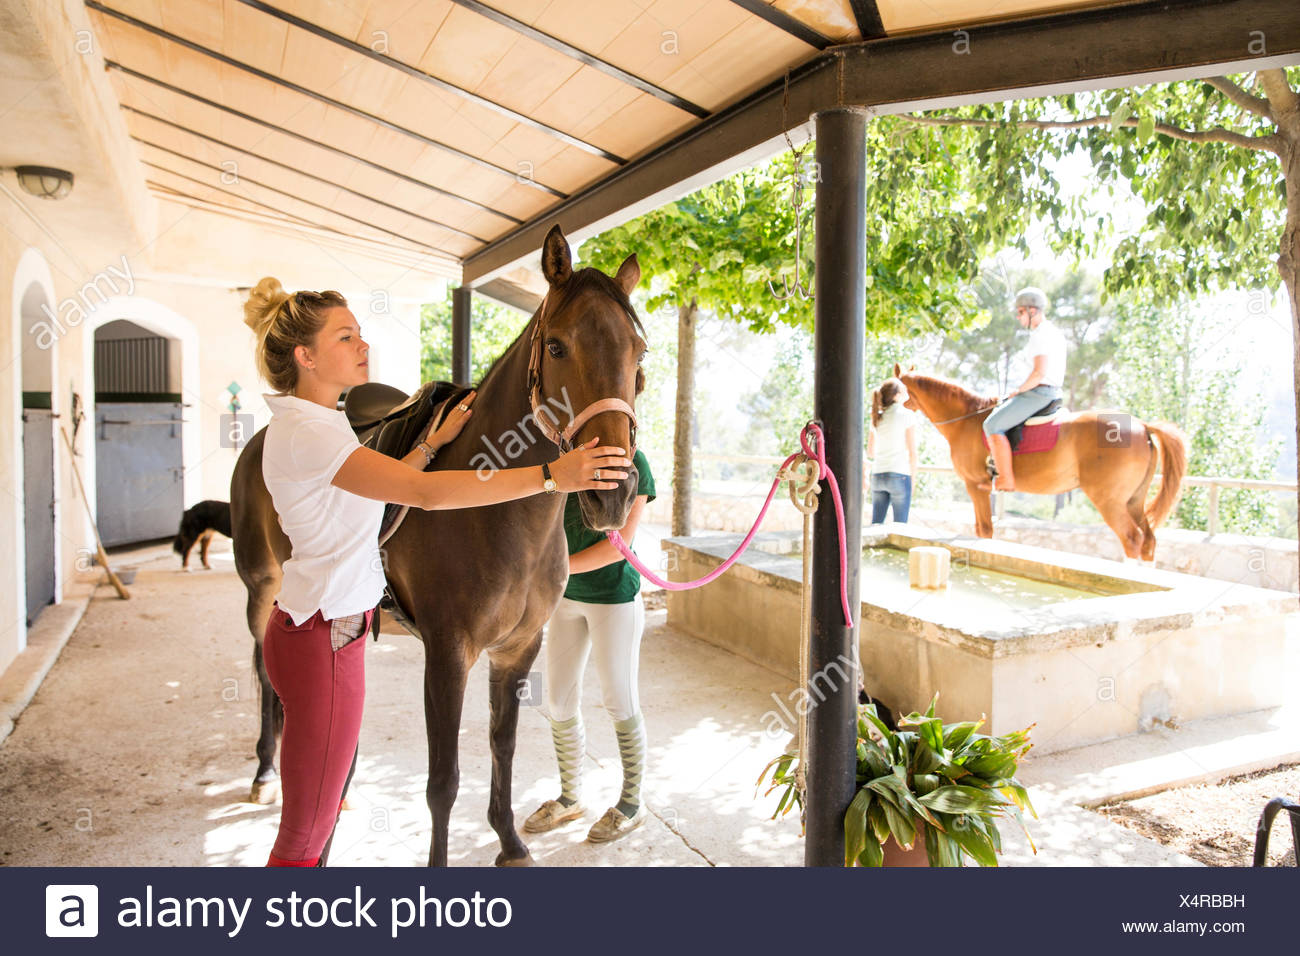 Female grooms with horse at rural stables - Stock Image